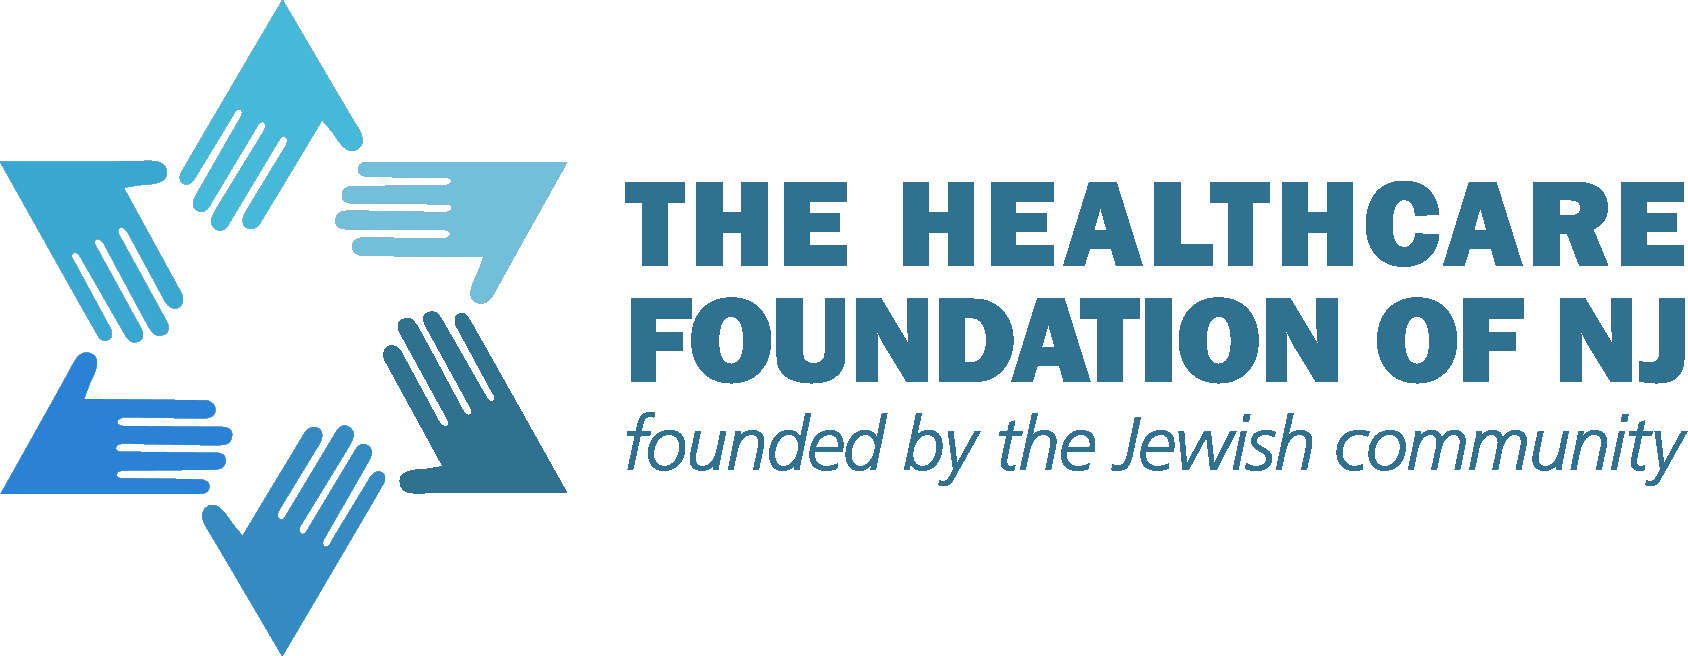 Healthcare Foundation of New Jersey